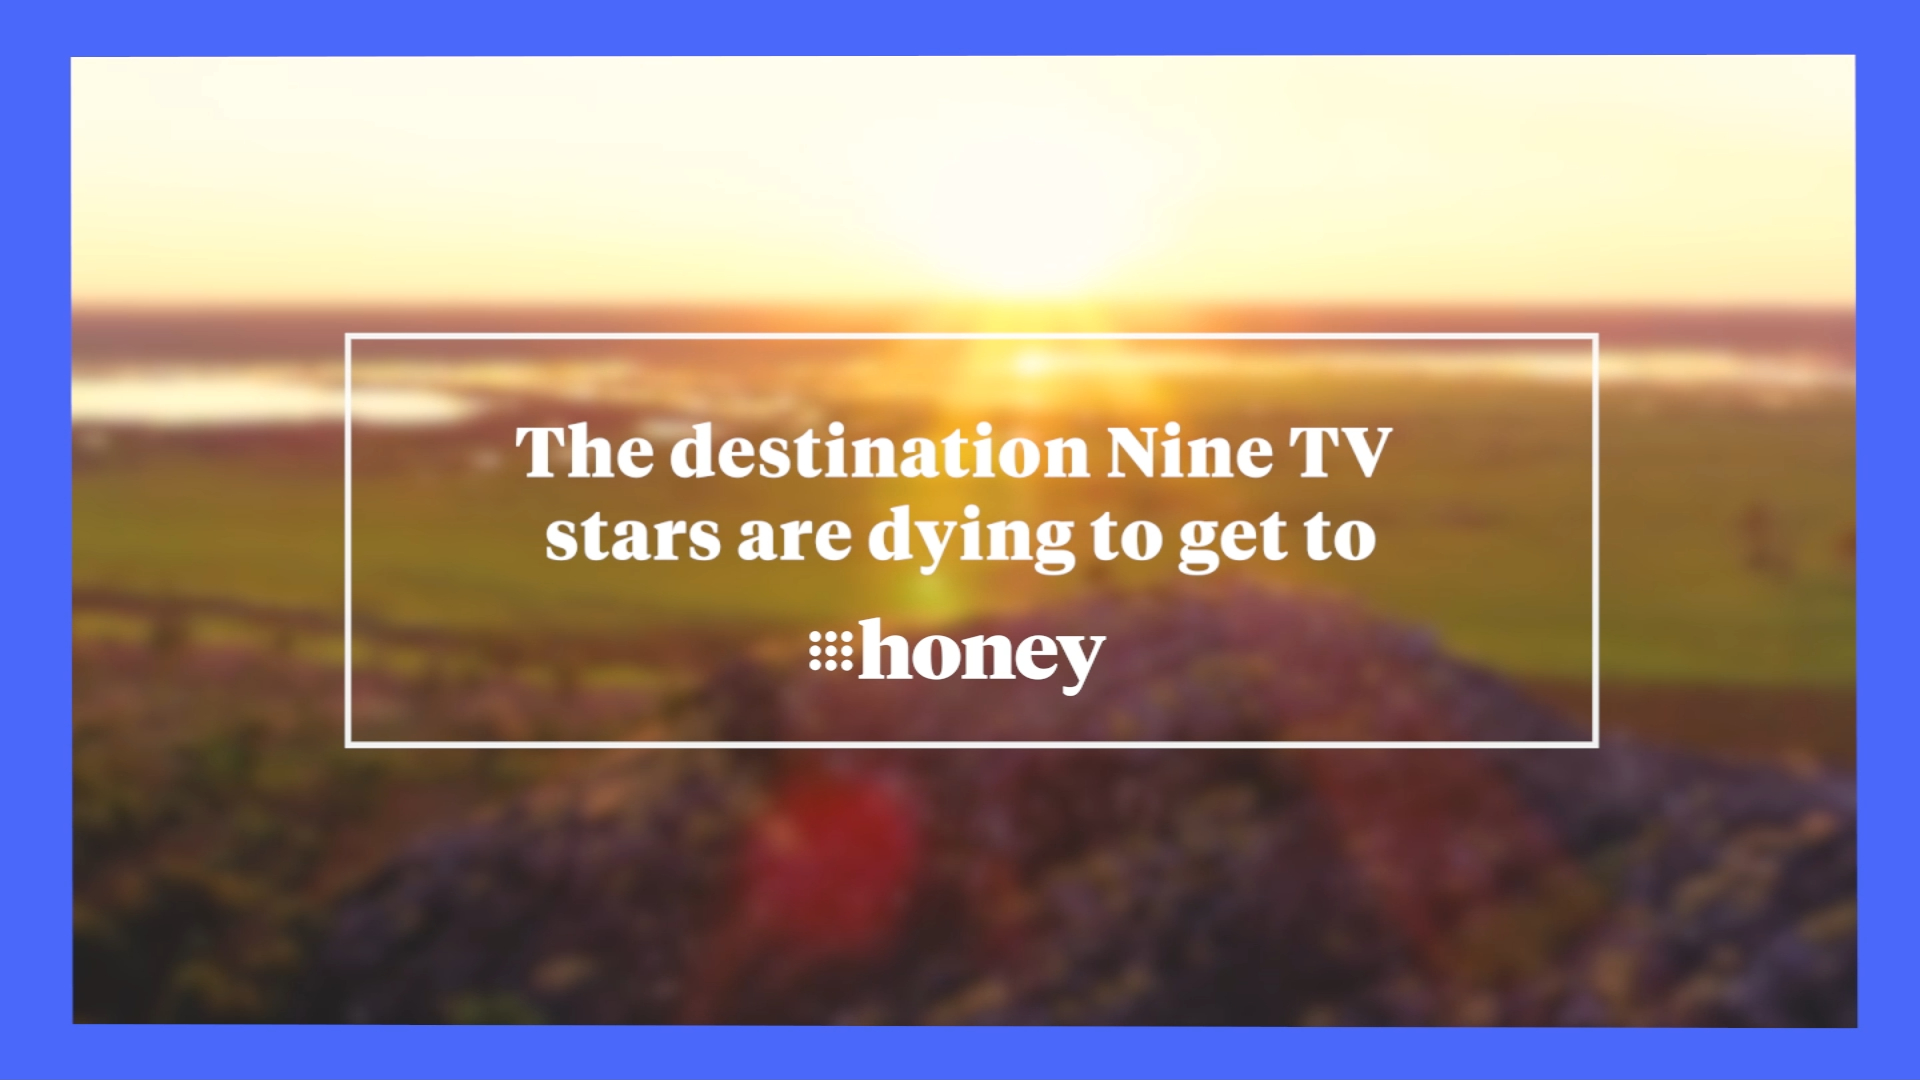 The destination Nine TV stars are dying to get to